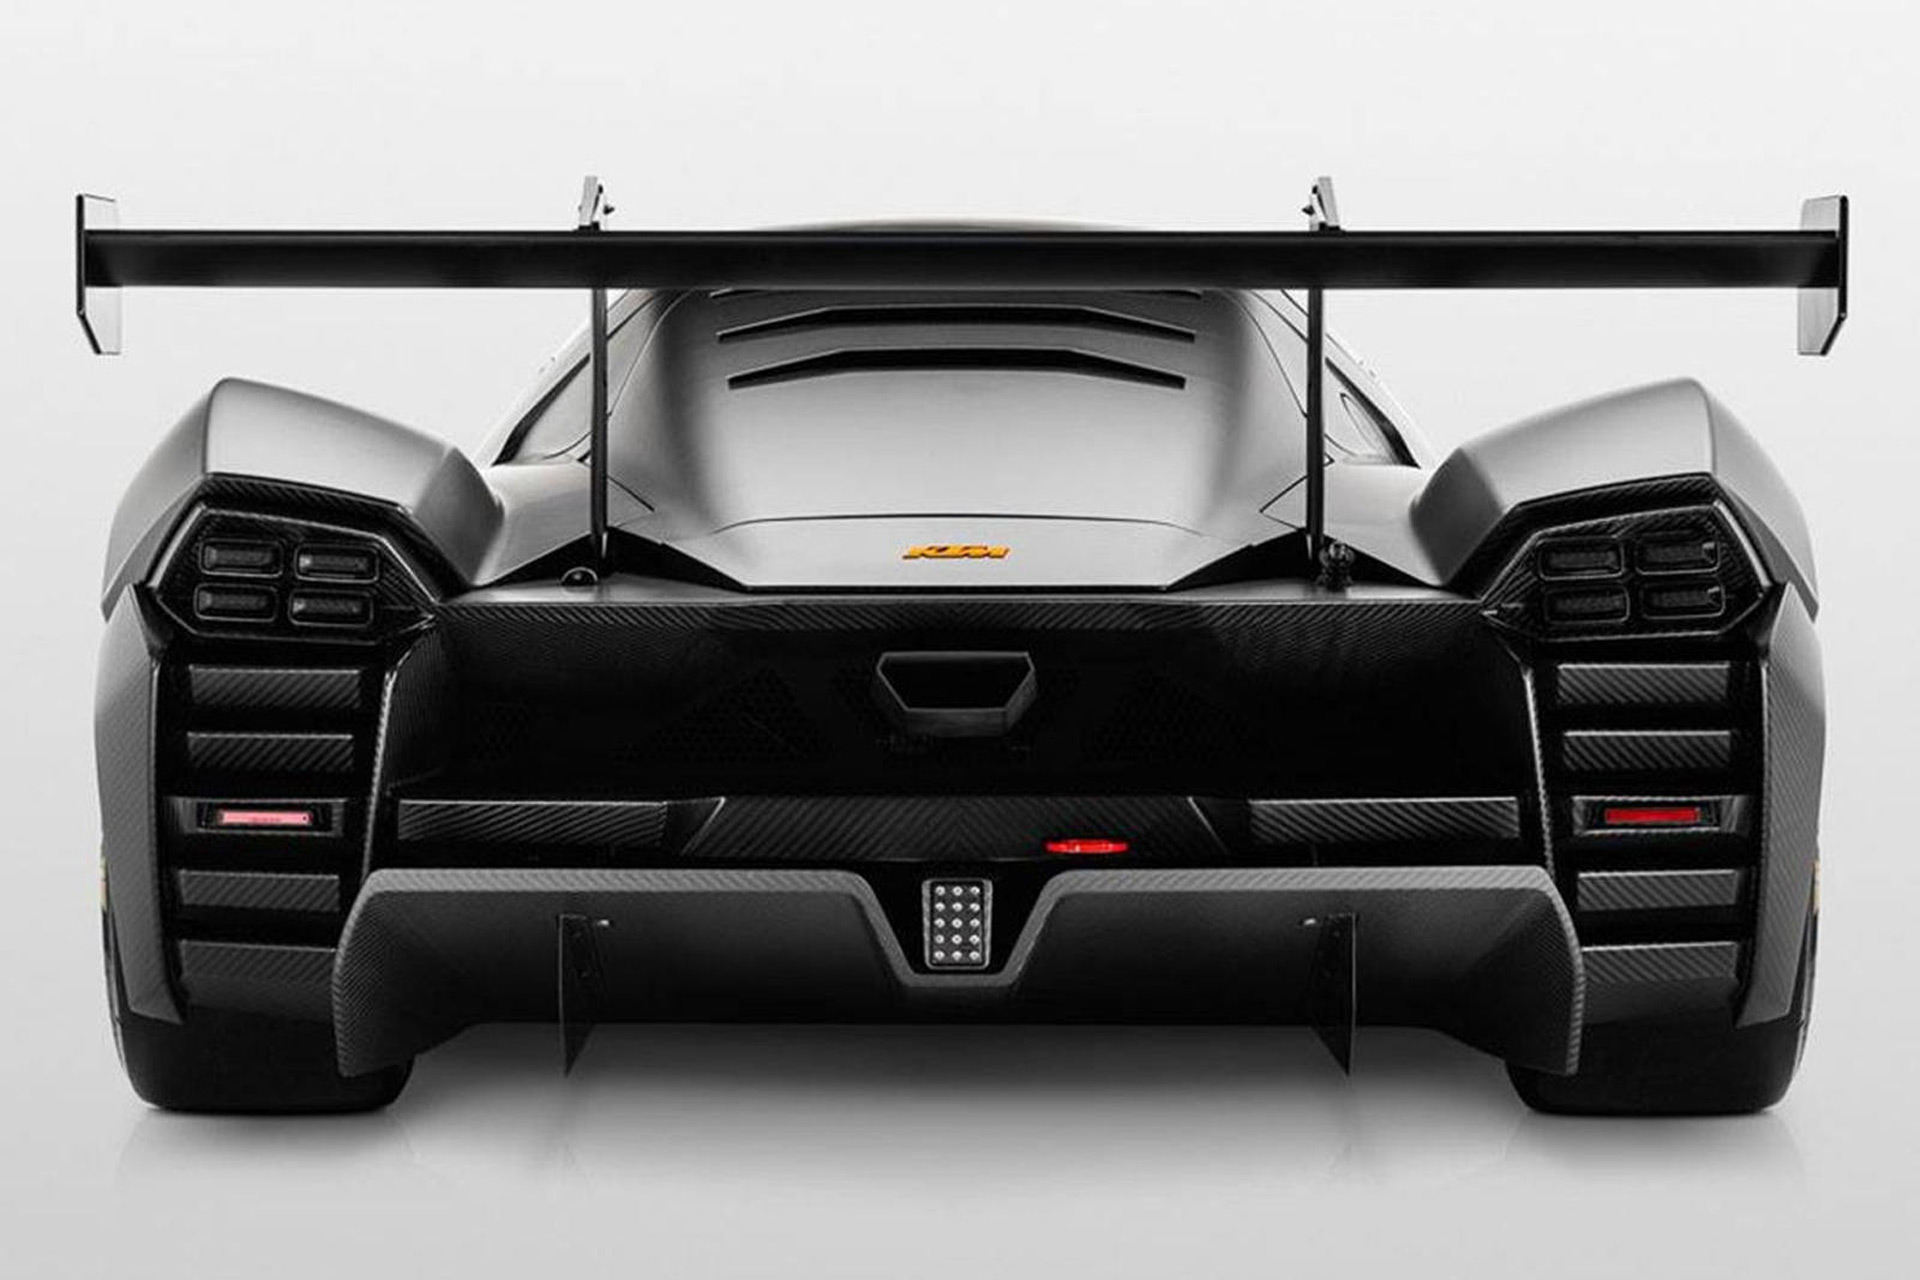 2021-ktm-x-bow-gtx-race-car_100765304_h